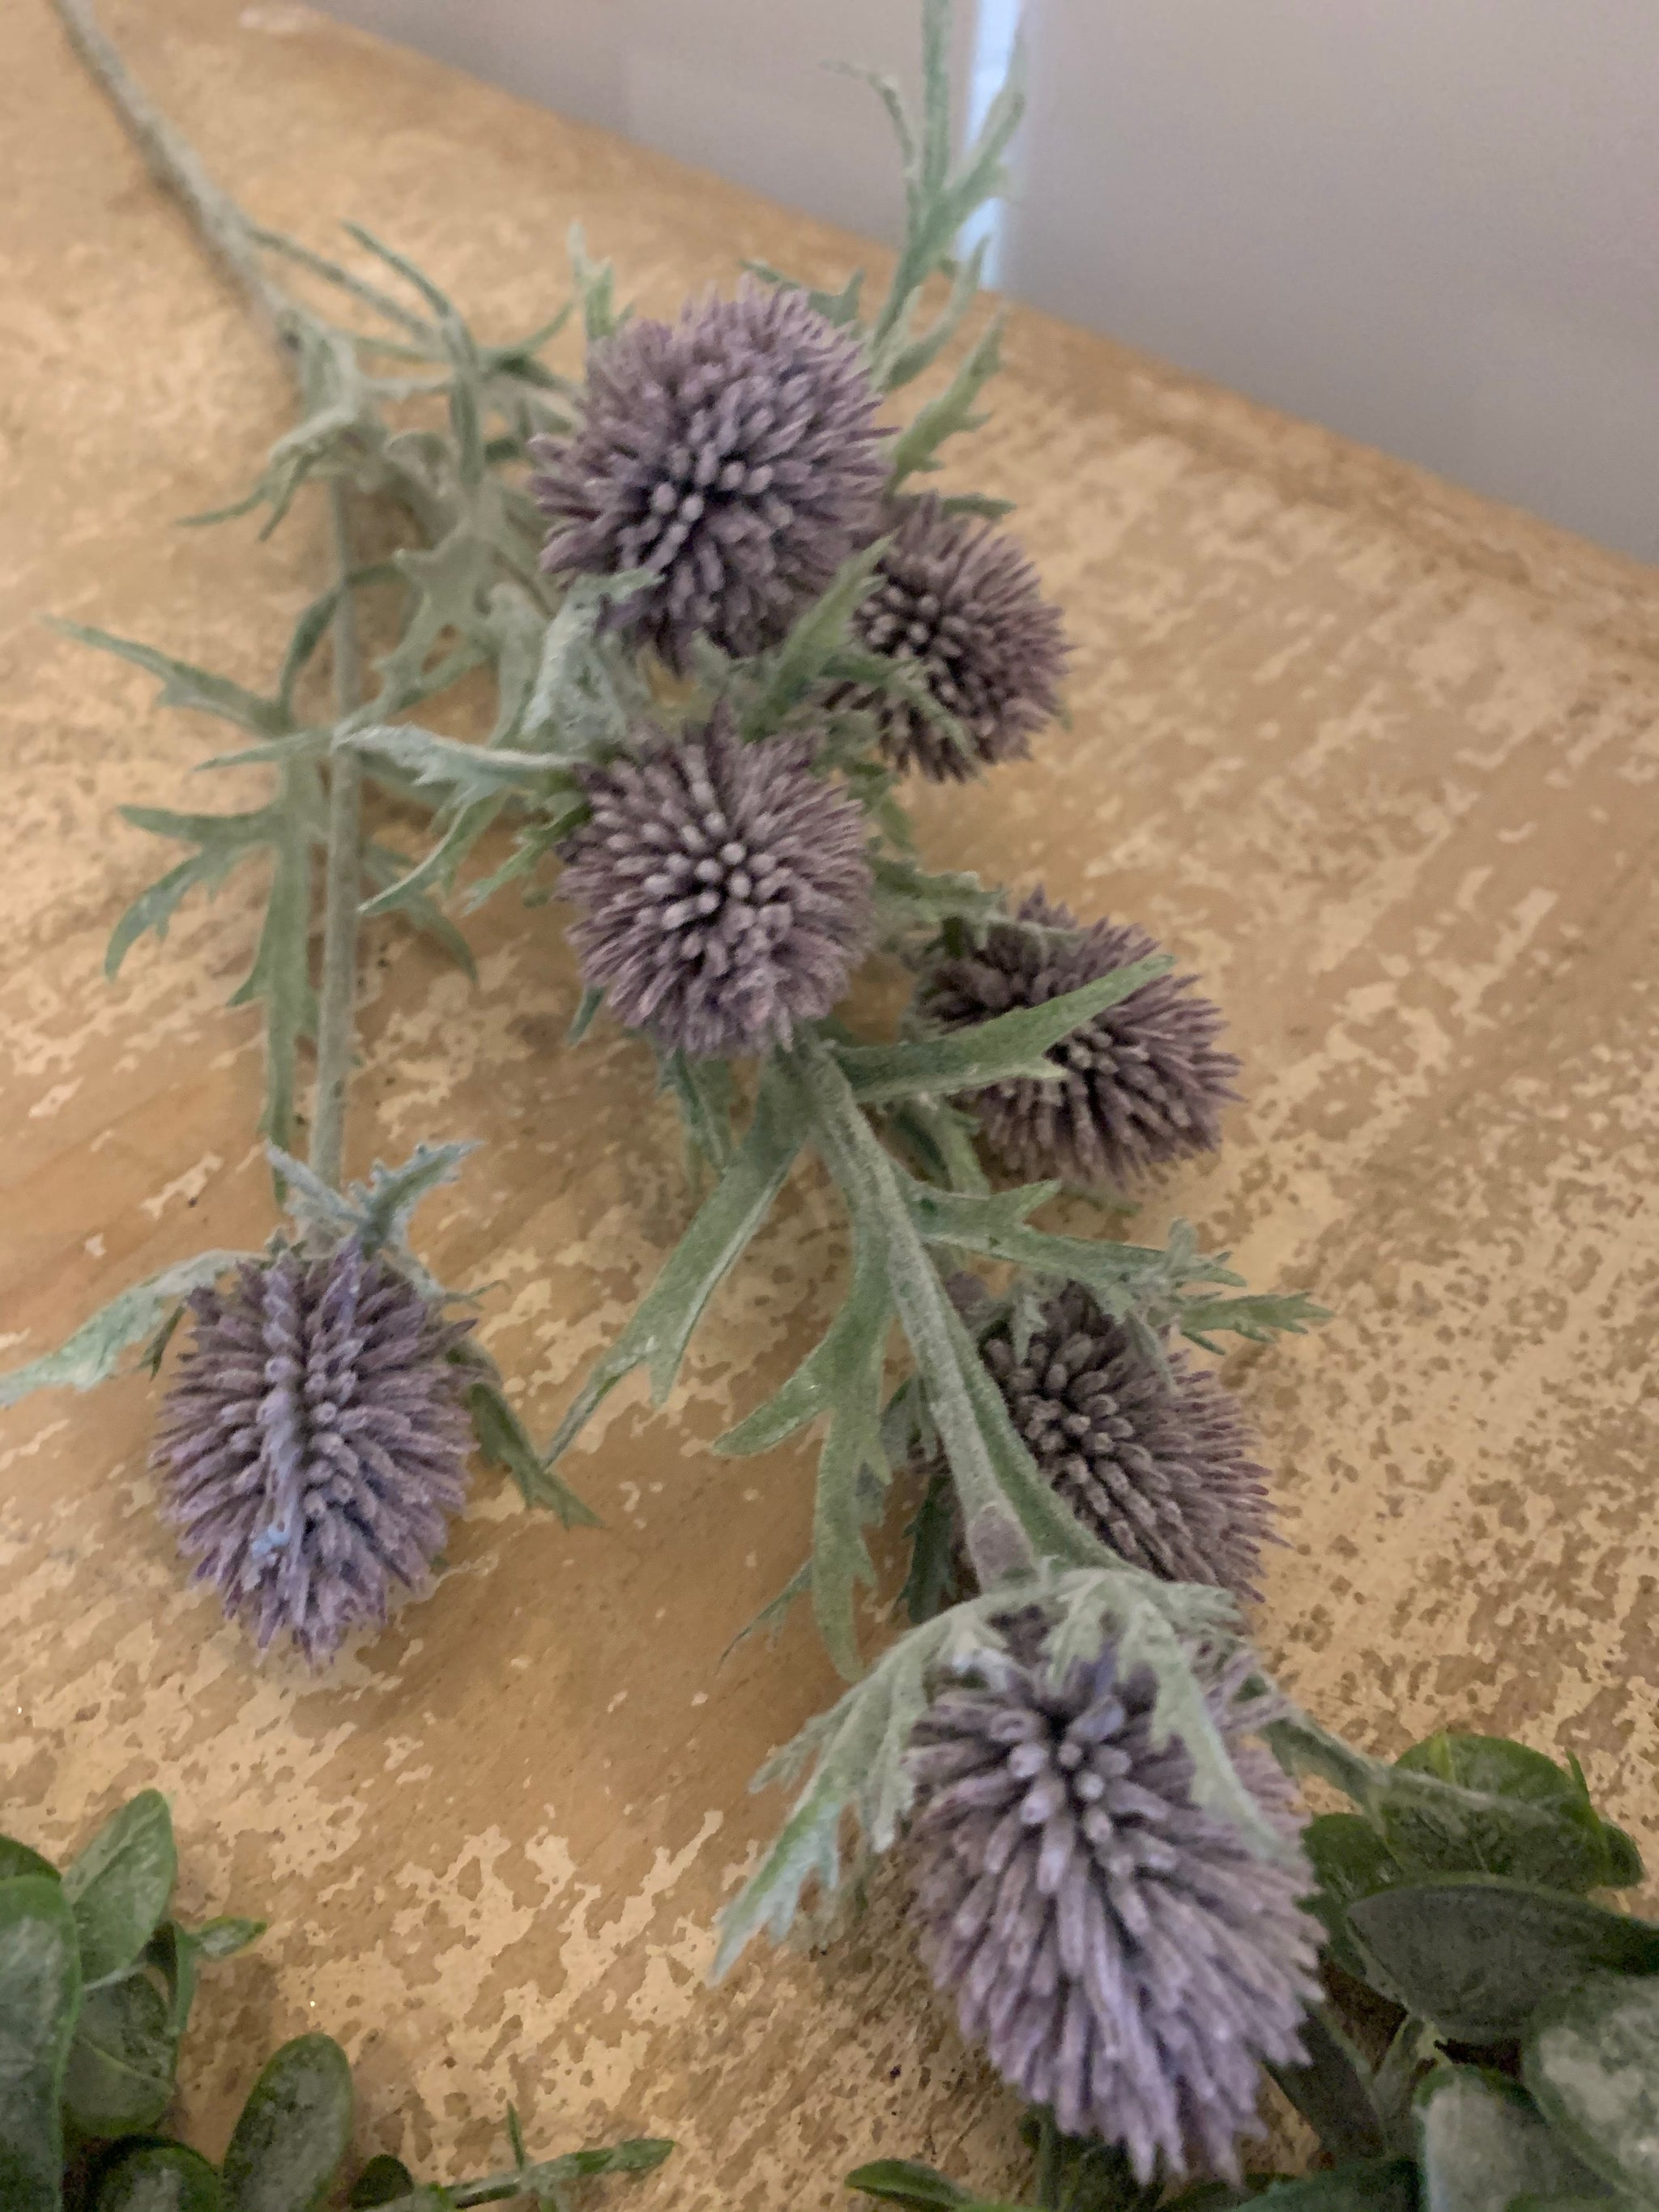 Thistle spray